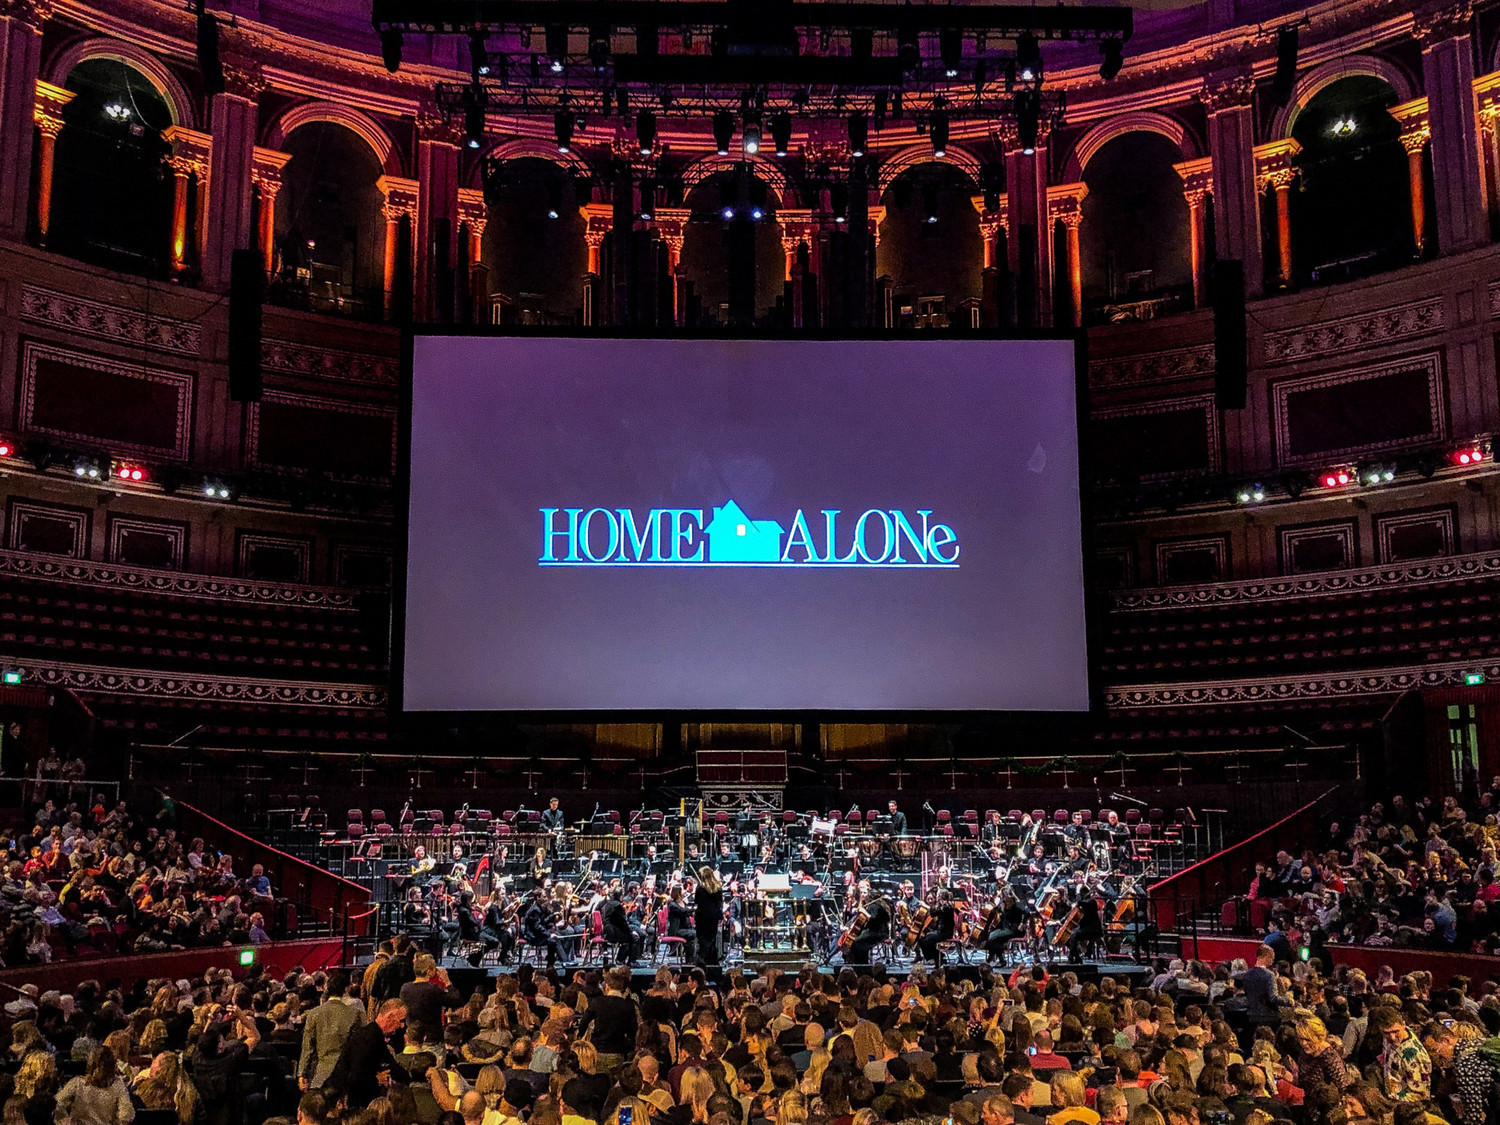 BWW Review: HOME ALONE IN CONCERT, Royal Albert Hall